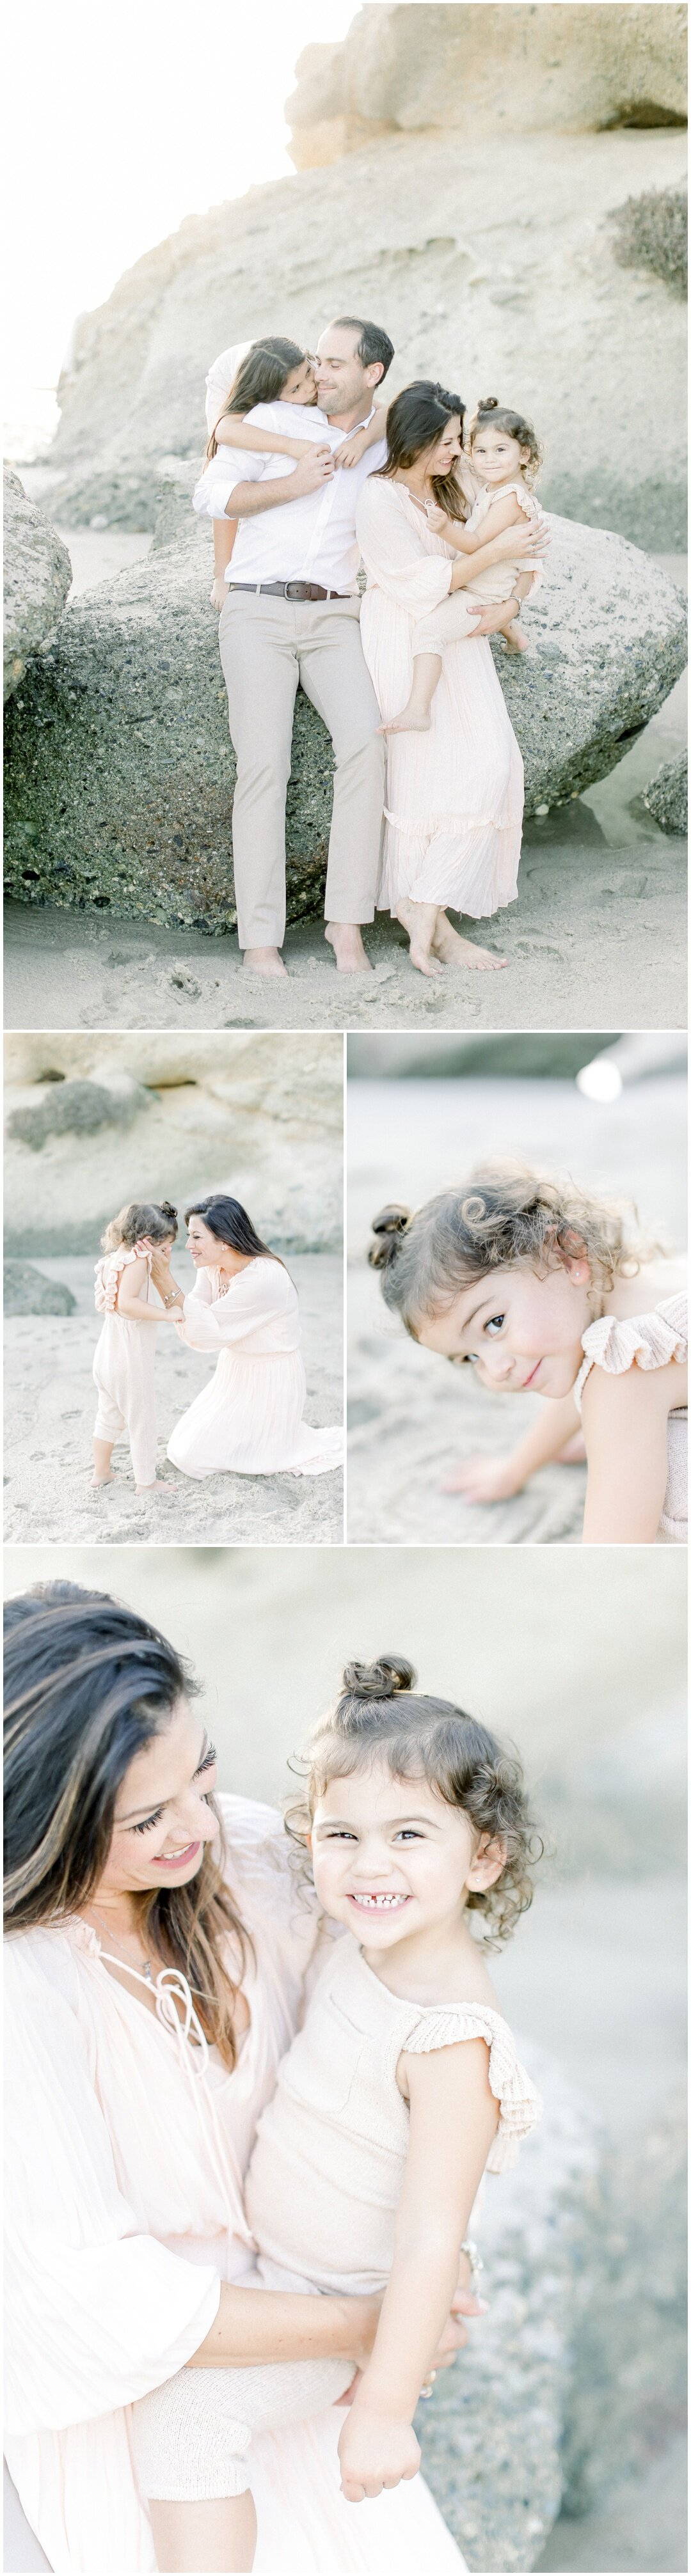 Newport+Beach+Newborn+Maternity+Photographer+Orange+County+Family+Photographer+Cori+Kleckner+Photography+Natalie+Hay+Loretz+Robert+Hay+The+Hay+Family_4436.jpg